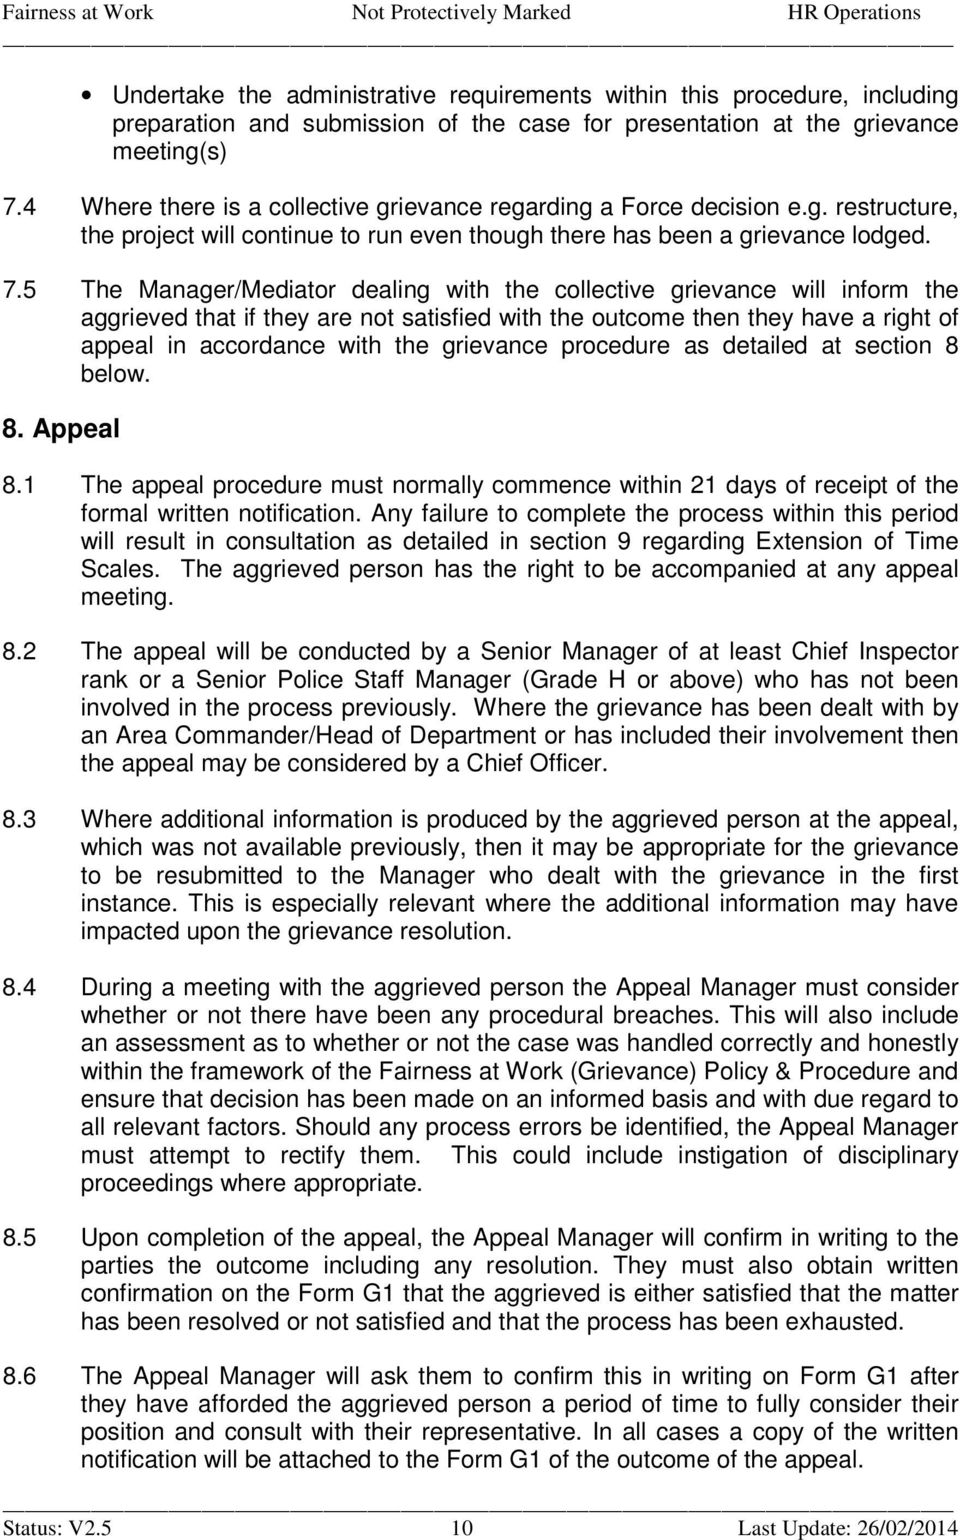 5 The Manager/Mediator dealing with the collective grievance will inform the aggrieved that if they are not satisfied with the outcome then they have a right of appeal in accordance with the